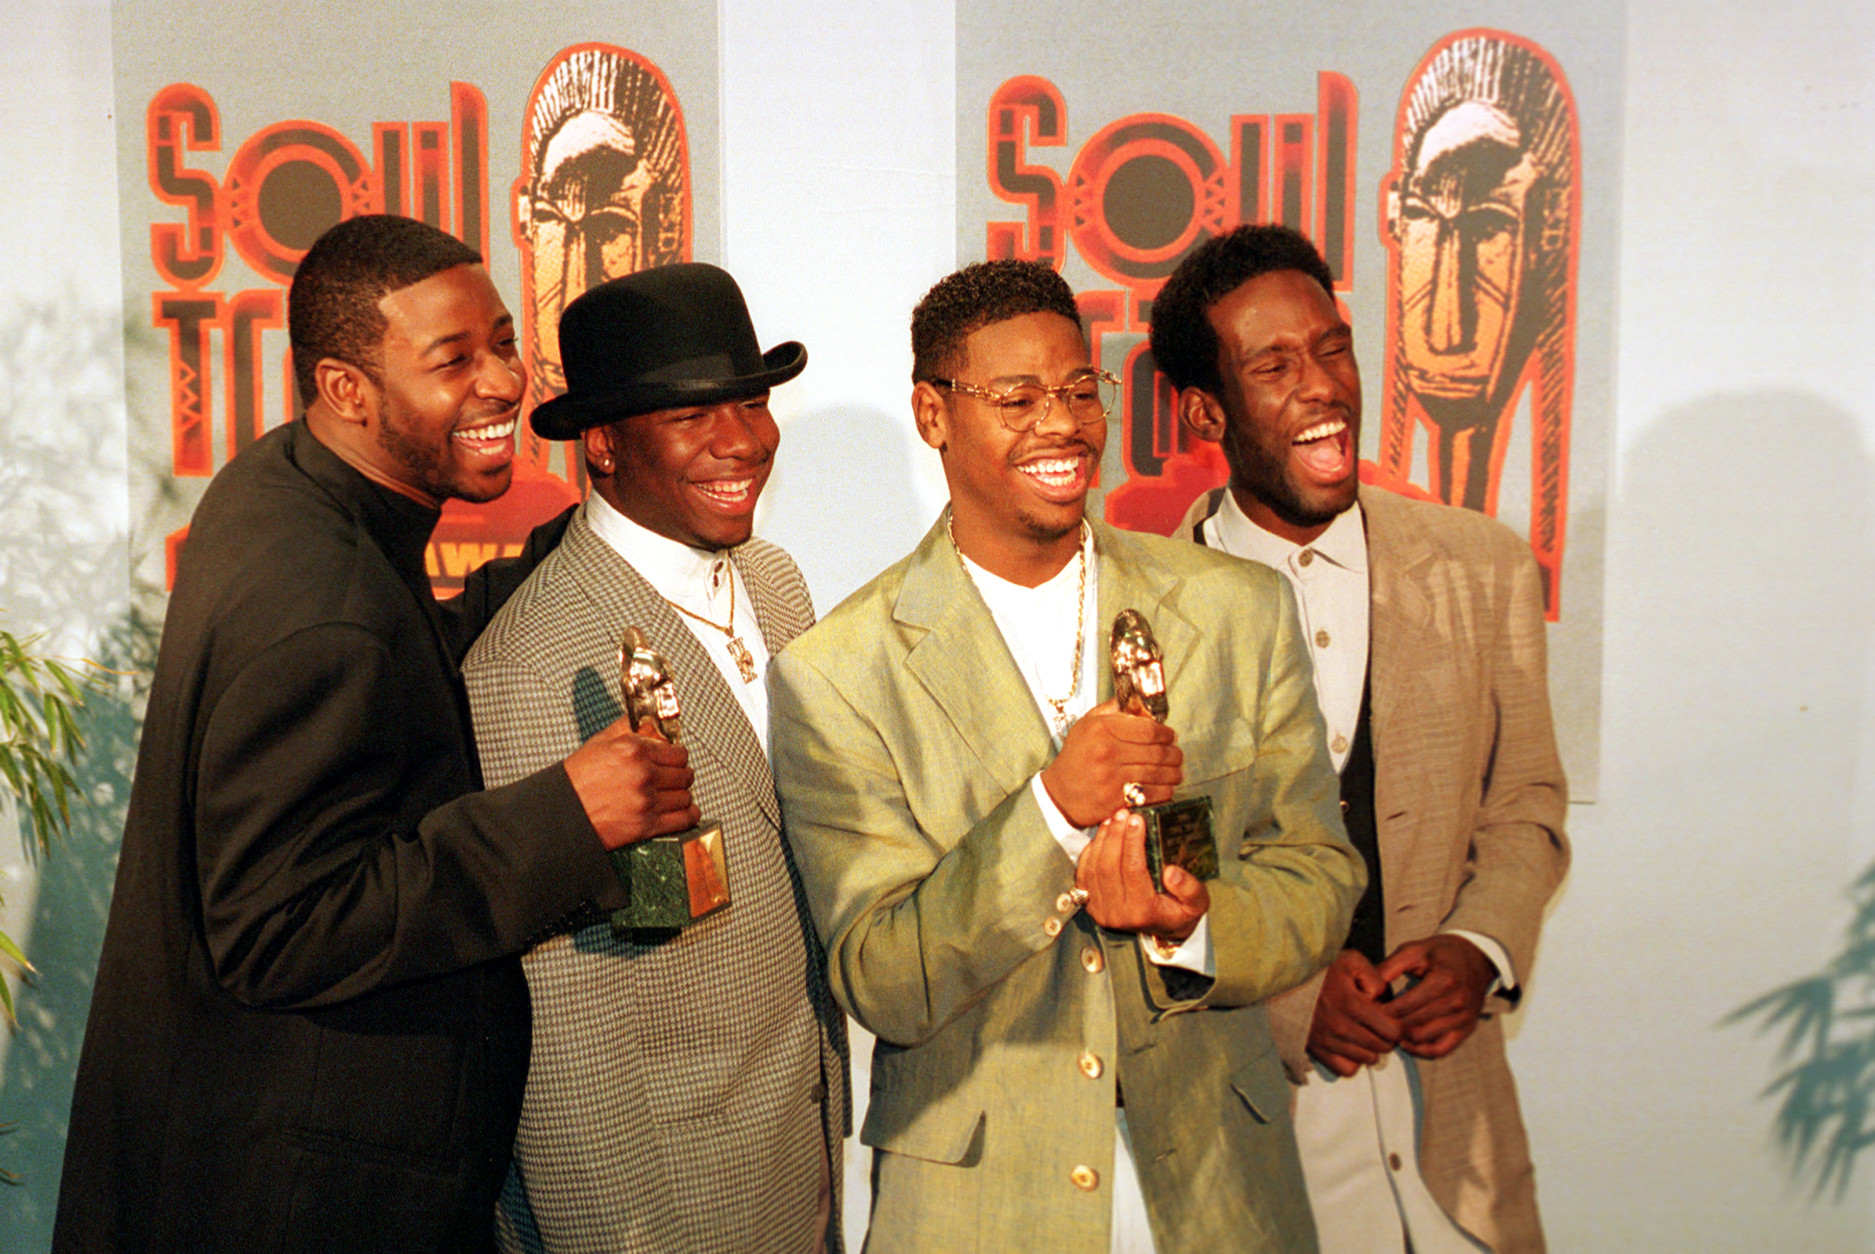 The group Boyz II Men display their two awards backstage at the Soul Train Music Awards in Los Angeles, Ca., Monday, March 13, 1995.  The group won for best rhythm and blues single, group, band or duo; and for best rhythm and blues album, group.  The members, from left, are, Michael McCary, Wanya Morris, Nate Morris and Shawn Stockman.  (AP Photo/Eric Draper)